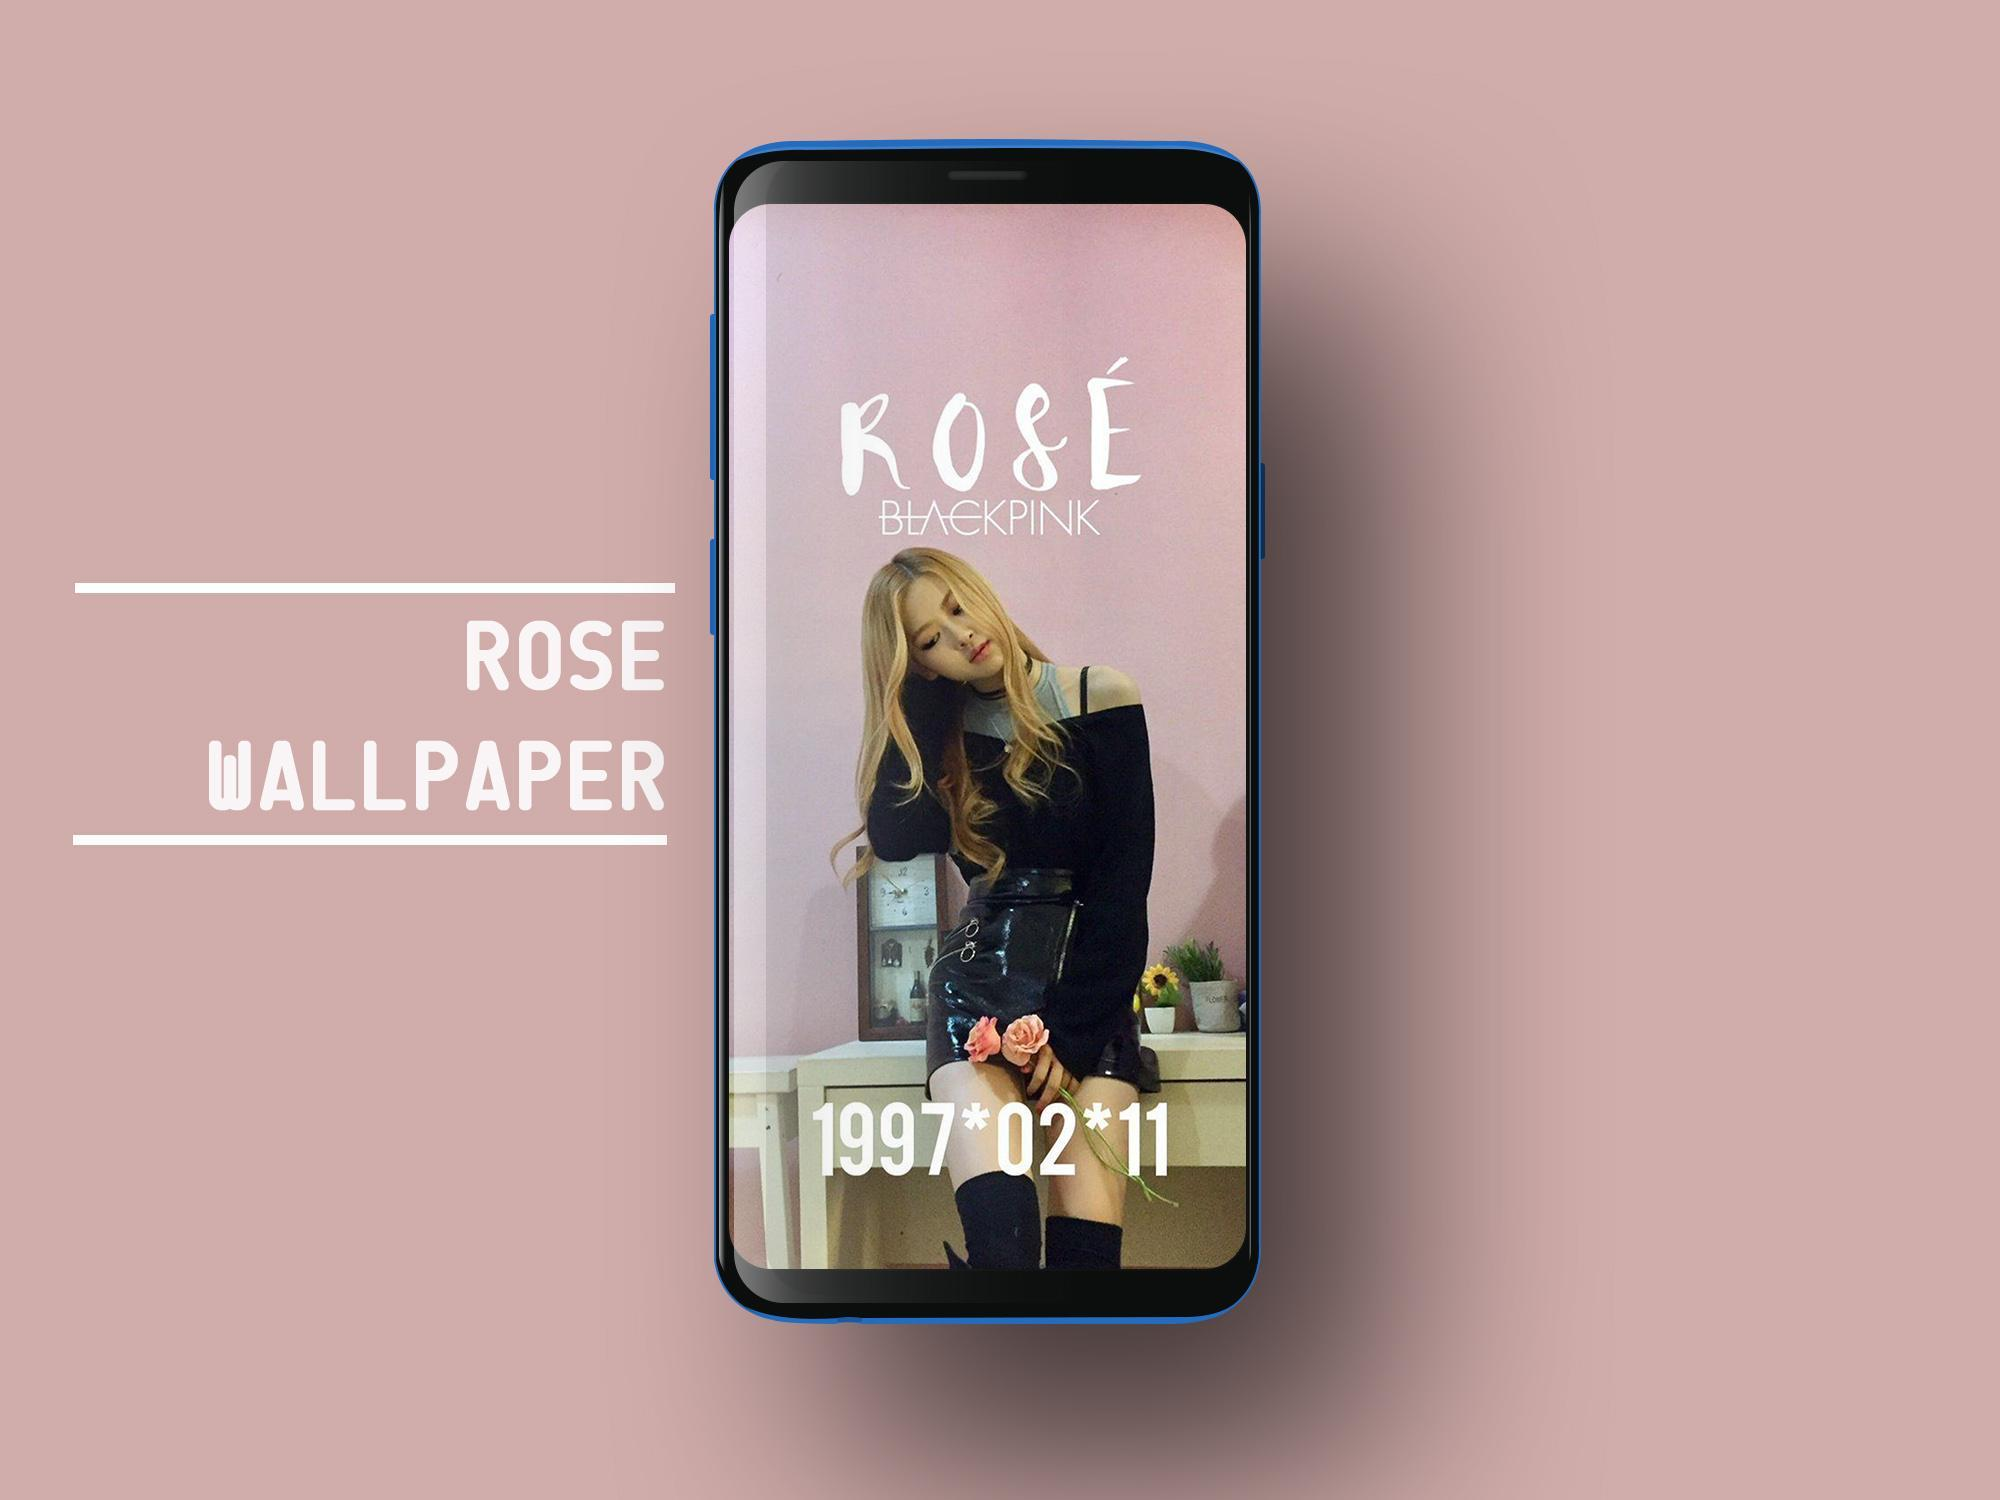 Blackpink Rose Wallpaper Kpop Fans Hd For Android Apk Download